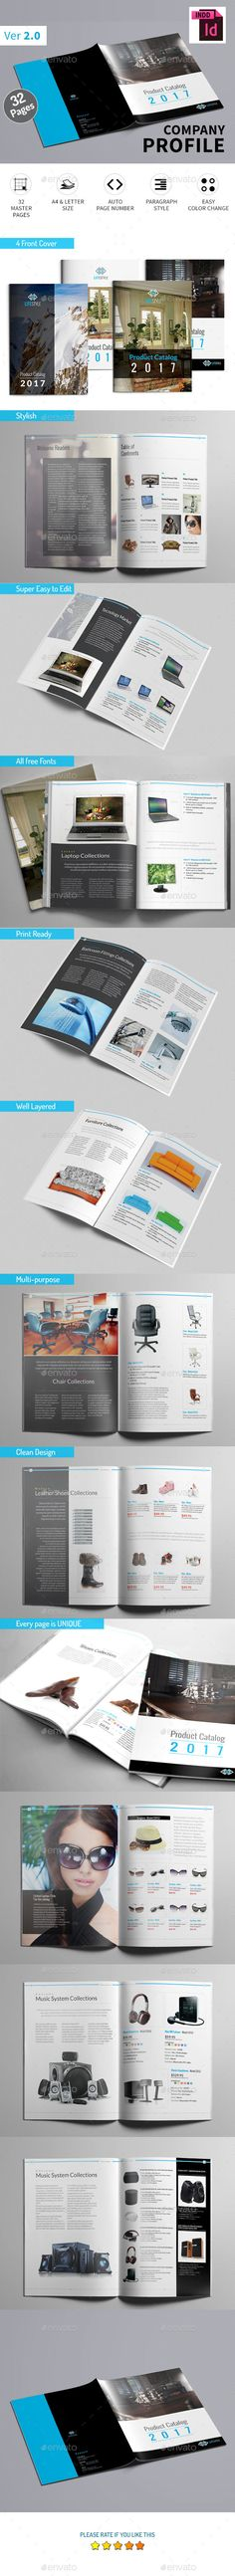 Multipurpose Catalog — InDesign INDD #unique #indesign • Available here → https://graphicriver.net/item/multipurpose-catalog/18753362?ref=pxcr